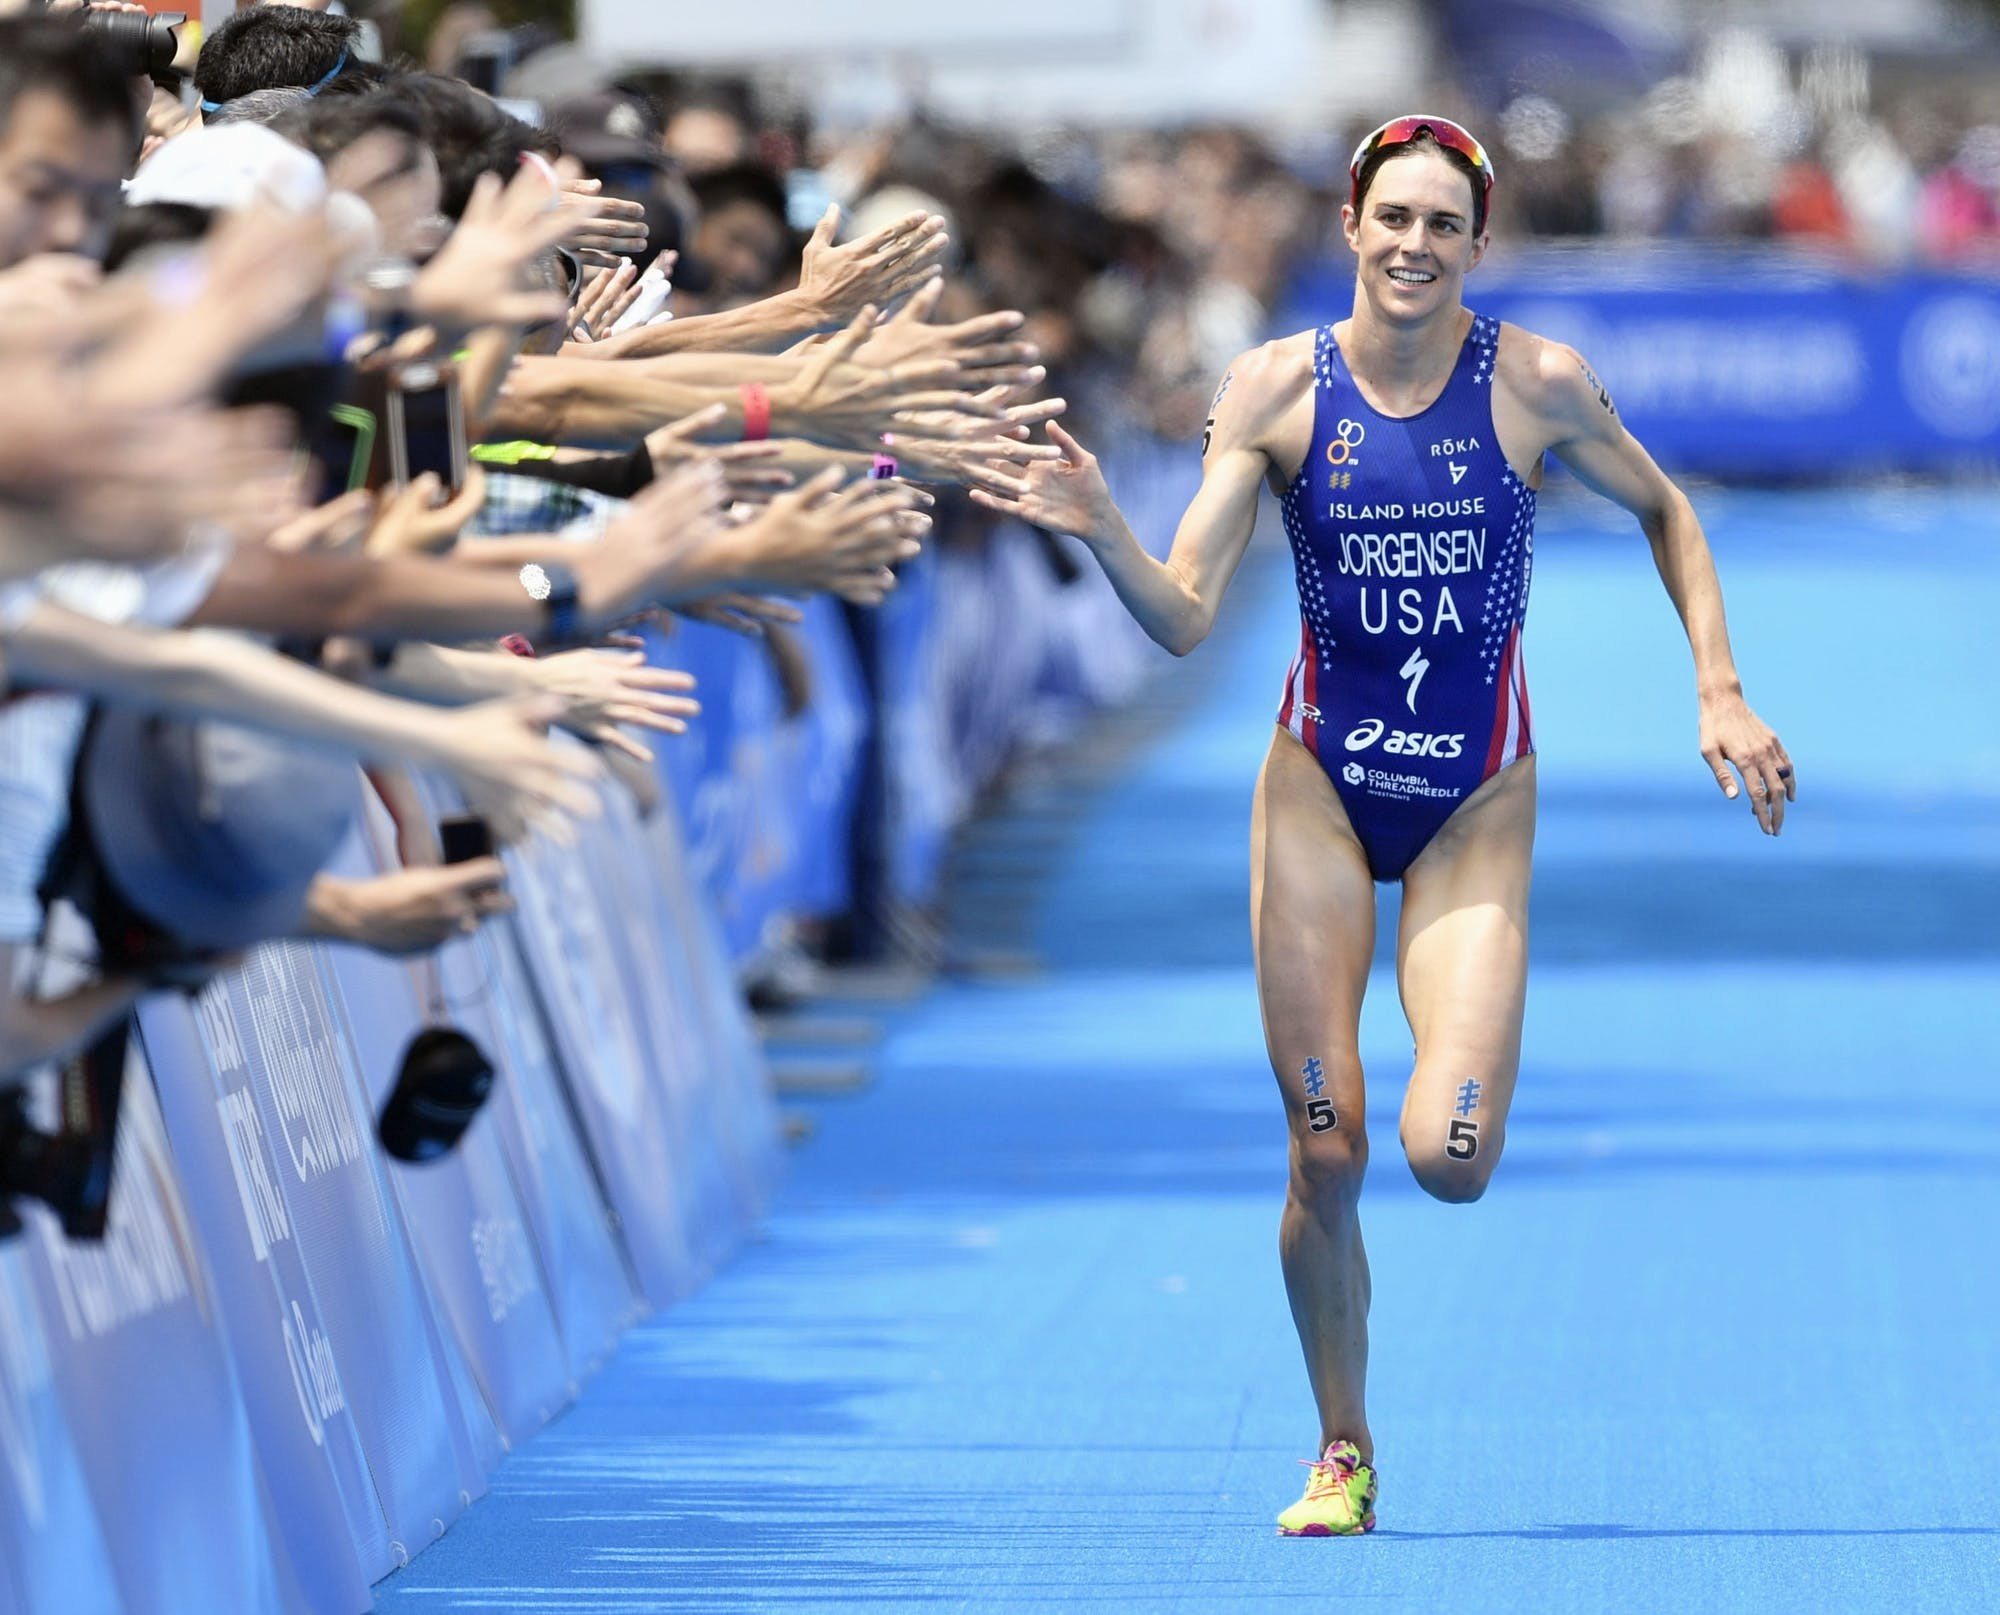 Gwen Jorgensen added to the 2018 Chicago Marathon field